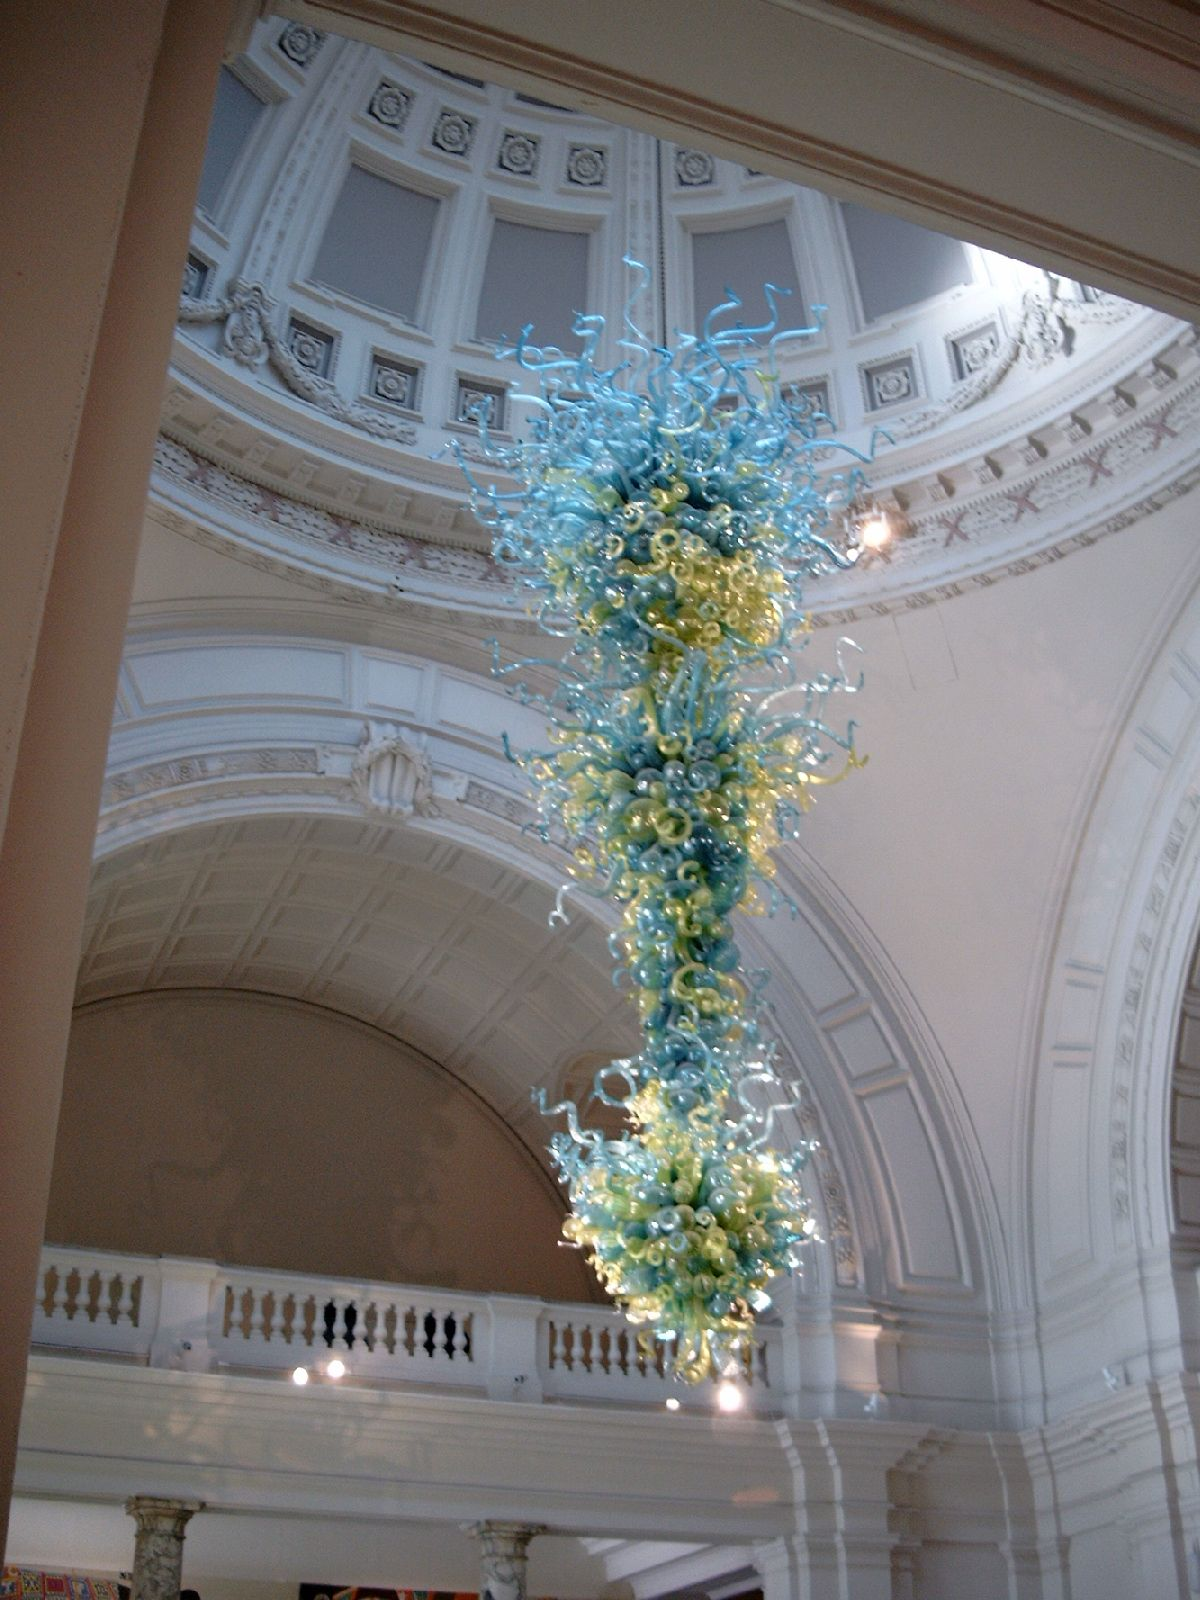 Filechandelier by dale chihuly victoria and albert museum london filechandelier by dale chihuly victoria and albert museum londong arubaitofo Choice Image